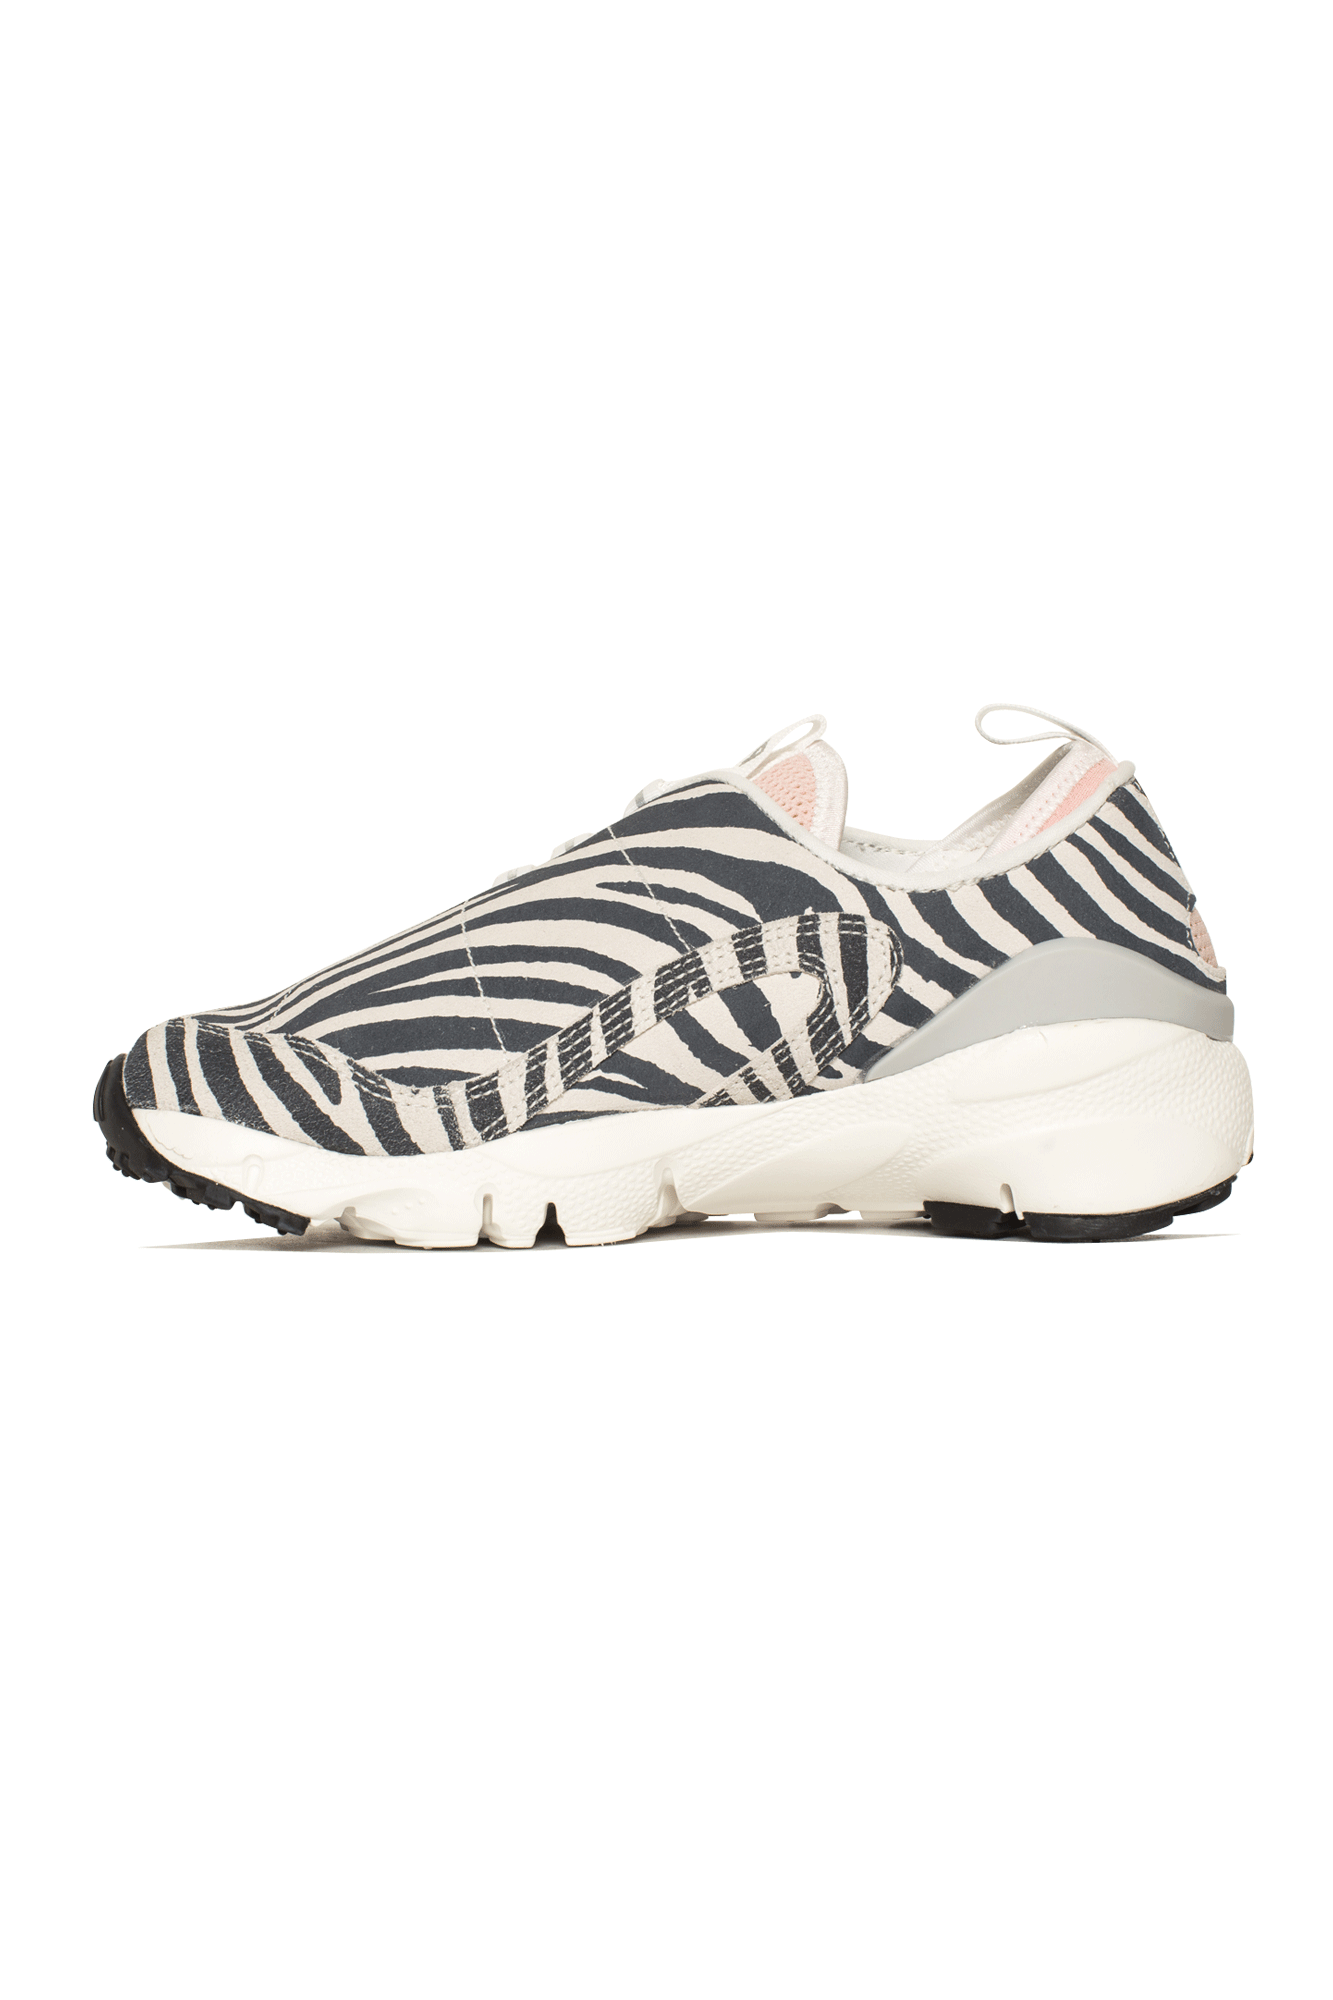 WMNS Air Footscape NXN White